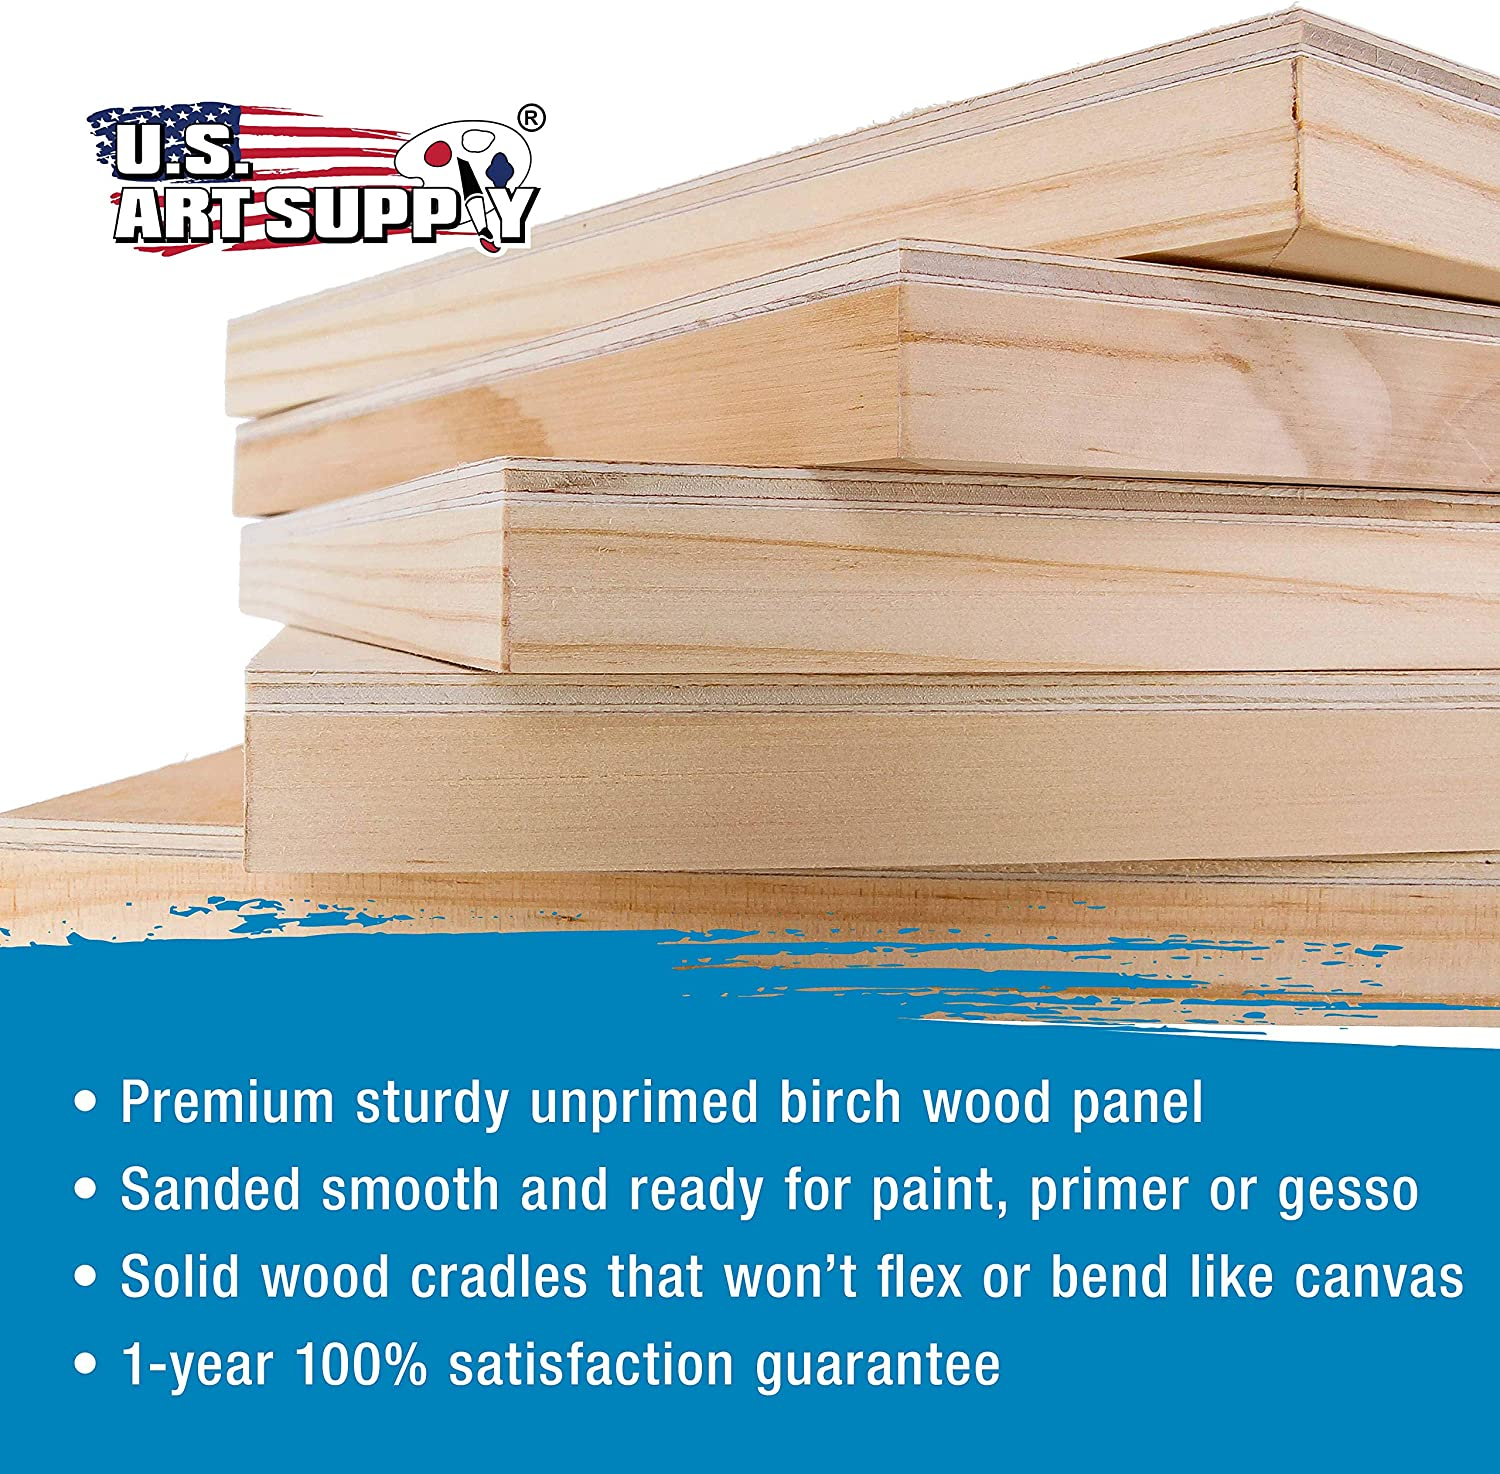 Amazon Com U S Art Supply 6 X 6 Birch Wood Paint Pouring Panel Boards Studio 3 4 Deep Cradle Pack Of 5 Artist Wooden Wall Canvases Painting Mixed Media Craft Acrylic Oil Watercolor,One Bedroom Apartments In Brooklyn Ny